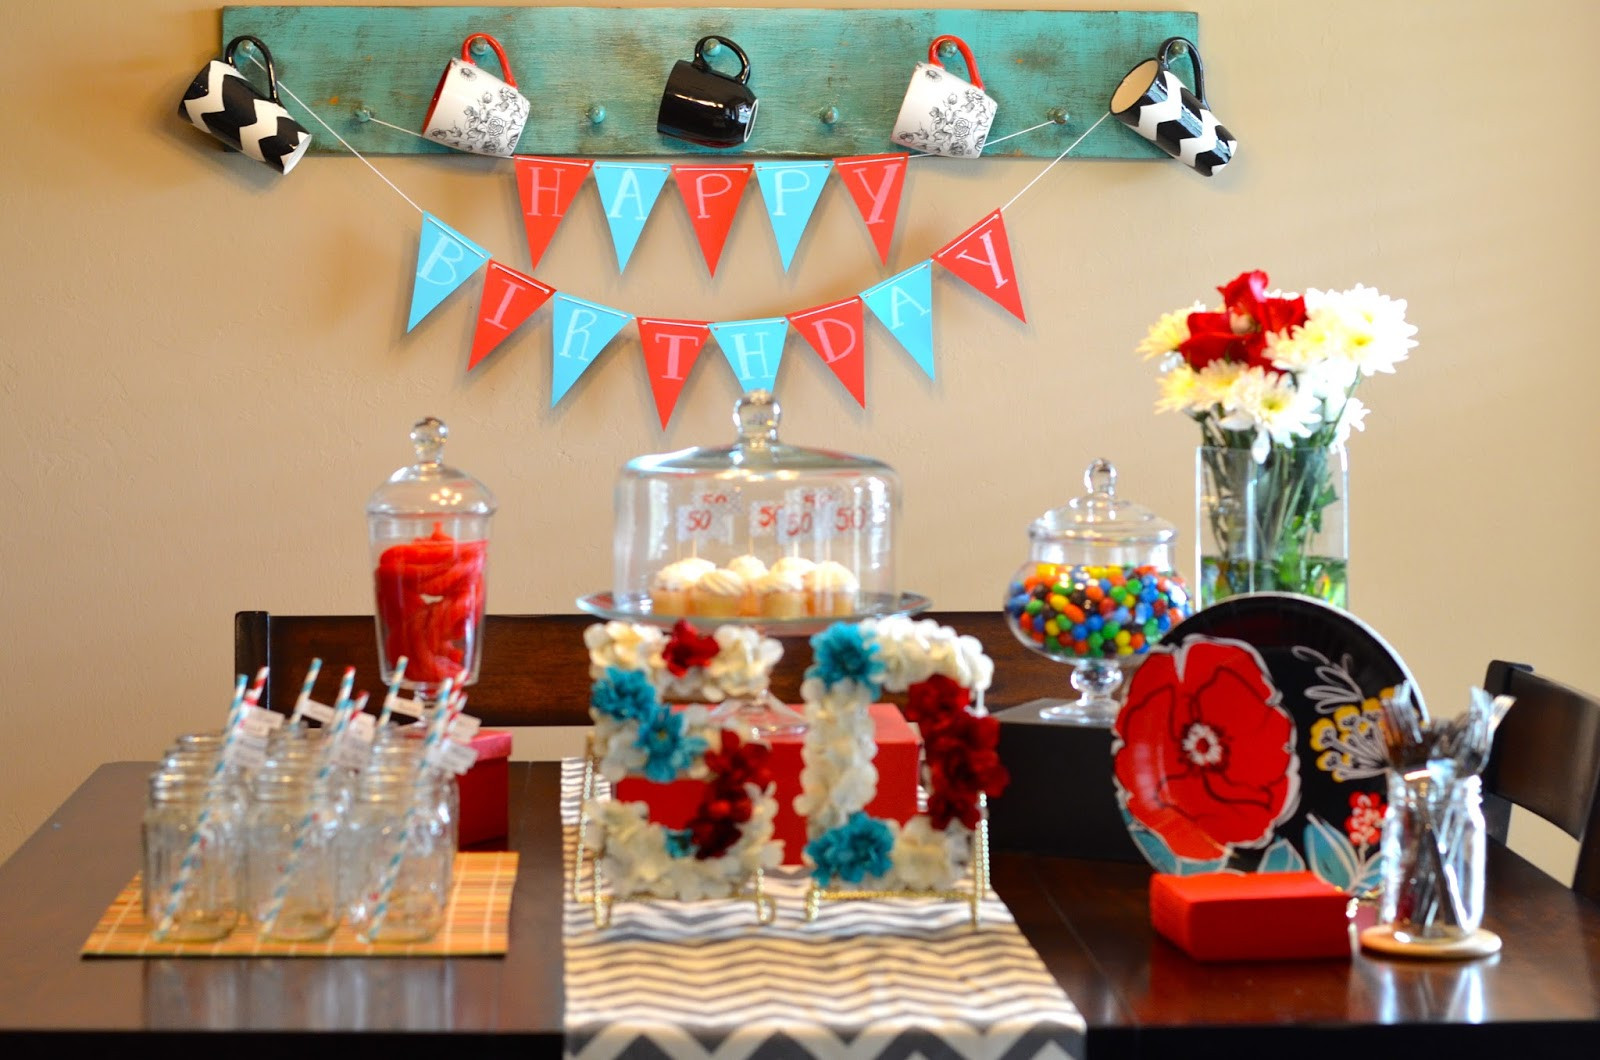 Best ideas about 50th Birthday Decorations For Him . Save or Pin high heels & high notes 50th Birthday Party Now.